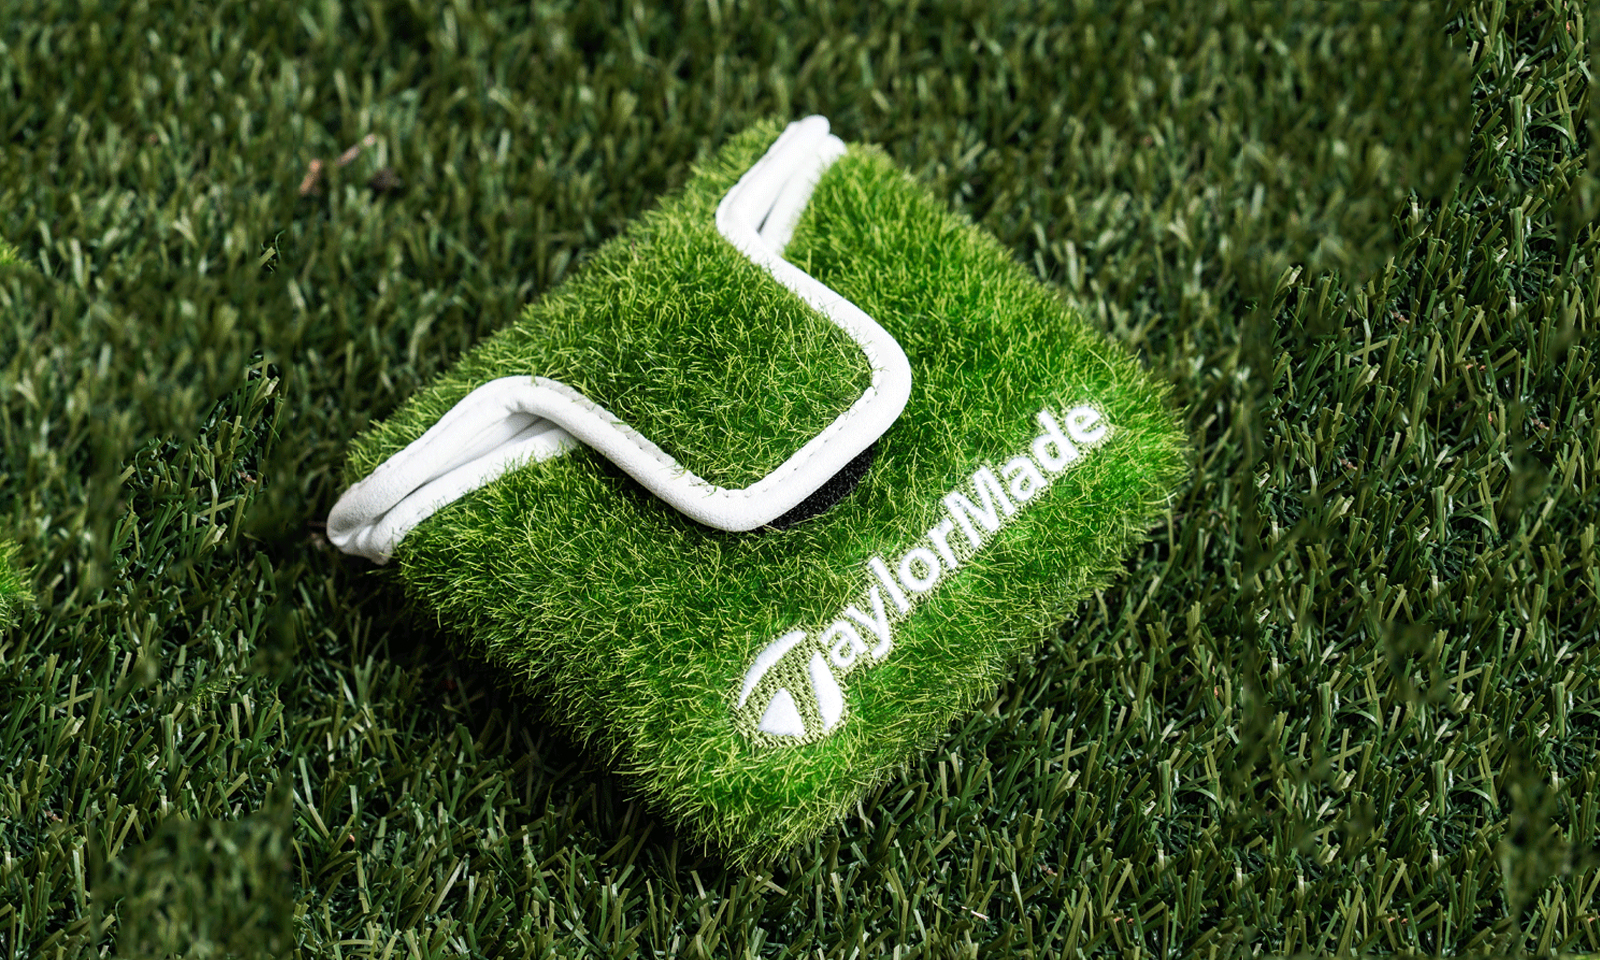 Turf inspired Putter Cover